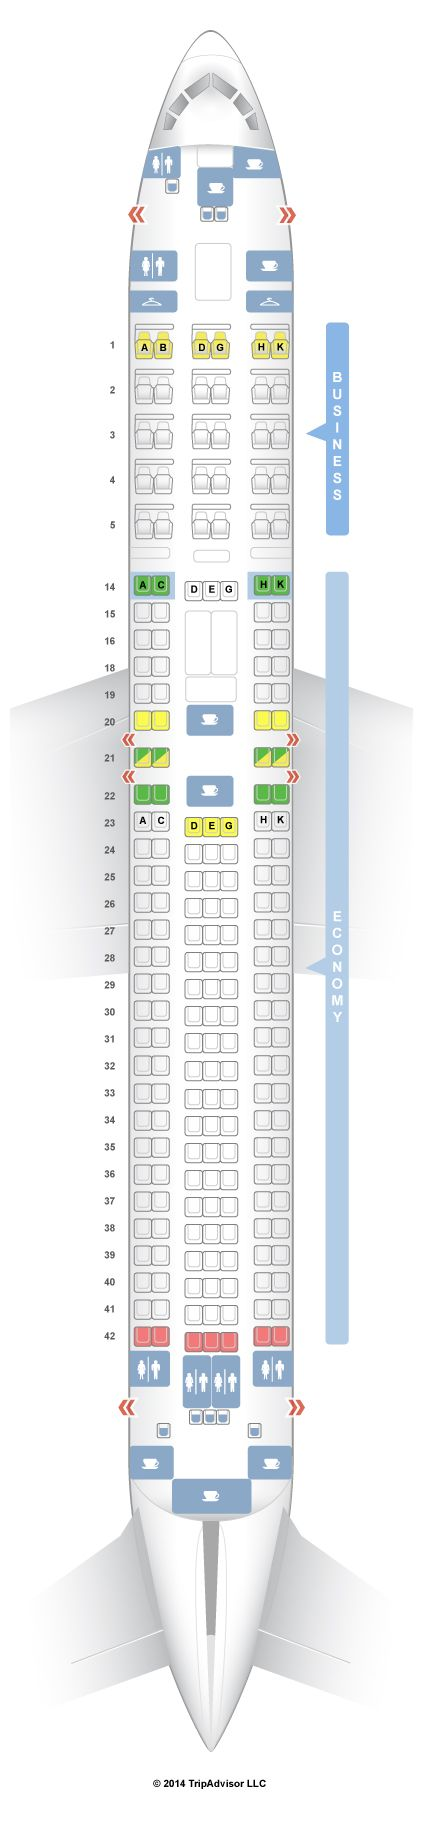 tam airlines seat map with 111534528246648038 on From Air Canada To Sas The Best New Business And First Class Seats furthermore Latam Airlines Boeing B 767 300 in addition Latam Airbus A350 Business Class Review moreover Flying A350 Airbus S Most Technologically Advanced Airliner besides Airbus A320 Seat Map 49bKAYnnVuf1Zst89Zv 7CsvrPIU8Dl 4HWu02m8k6uDM.